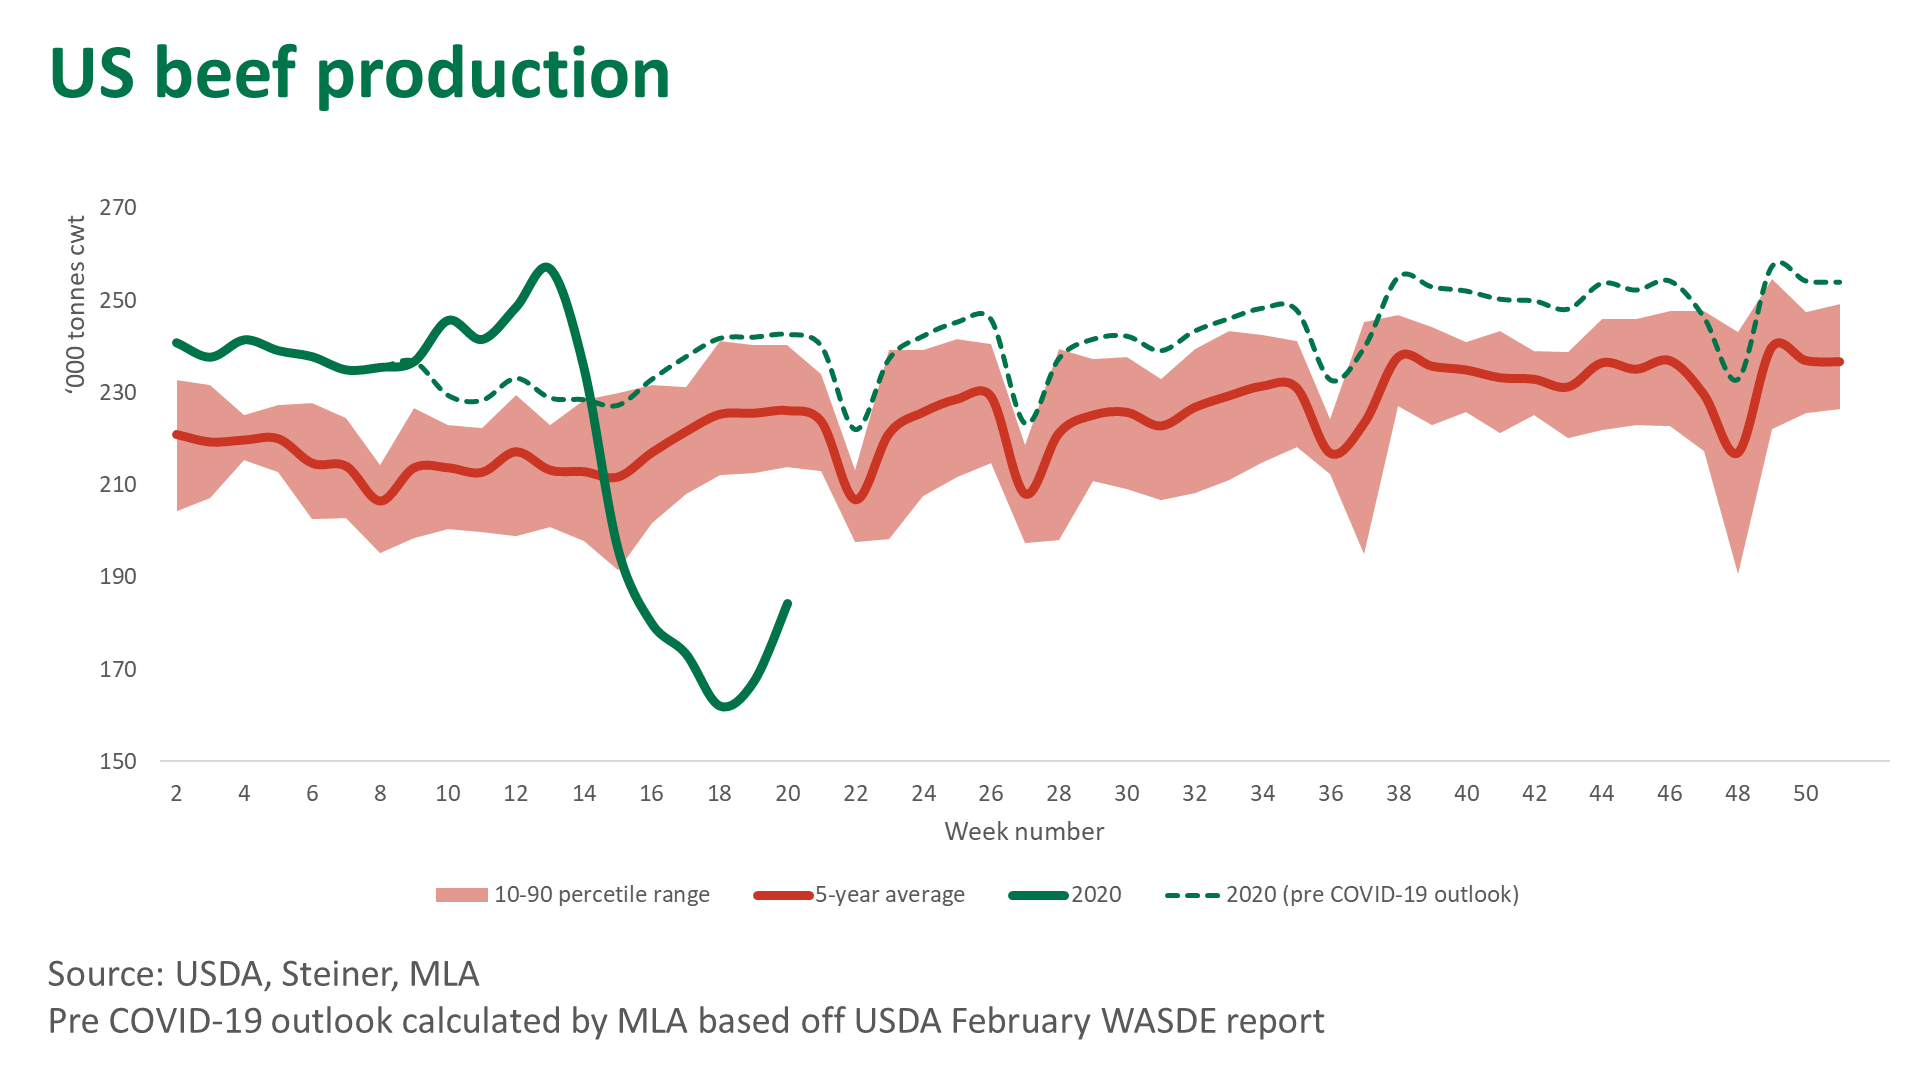 US-beef-production-210520.png